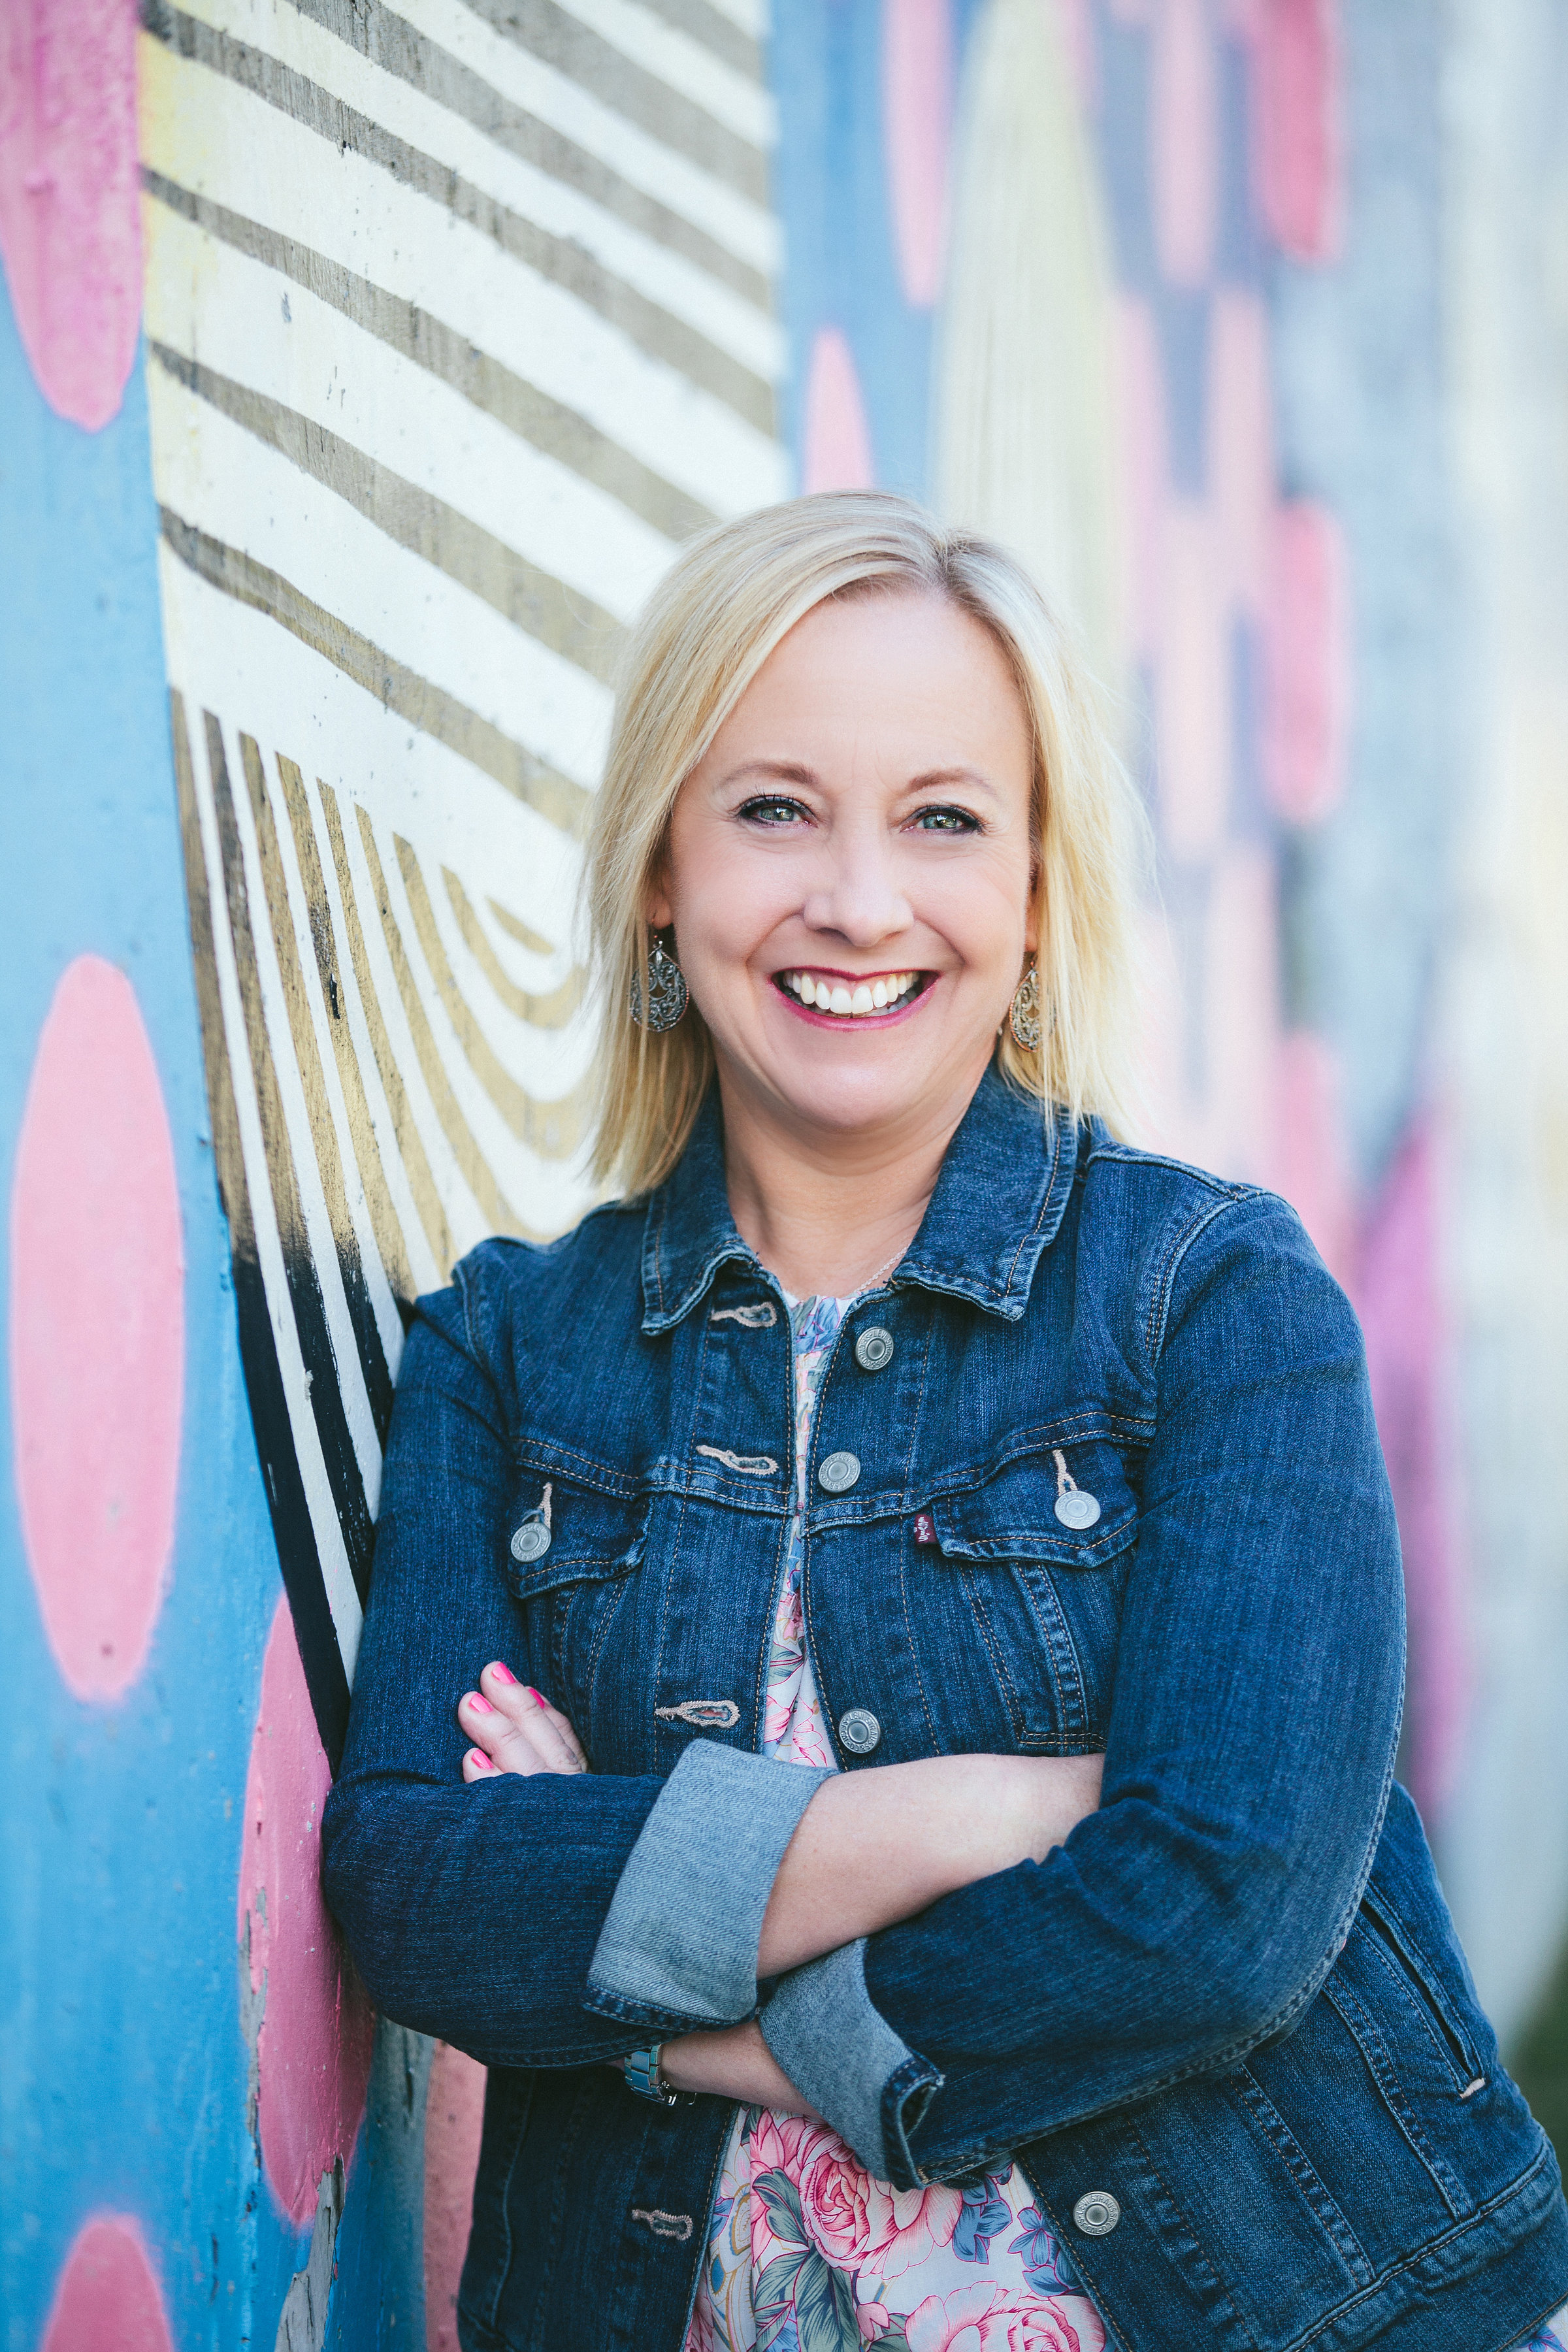 Lisa Rosemond Vocal Coach   Sing Fearlessly!